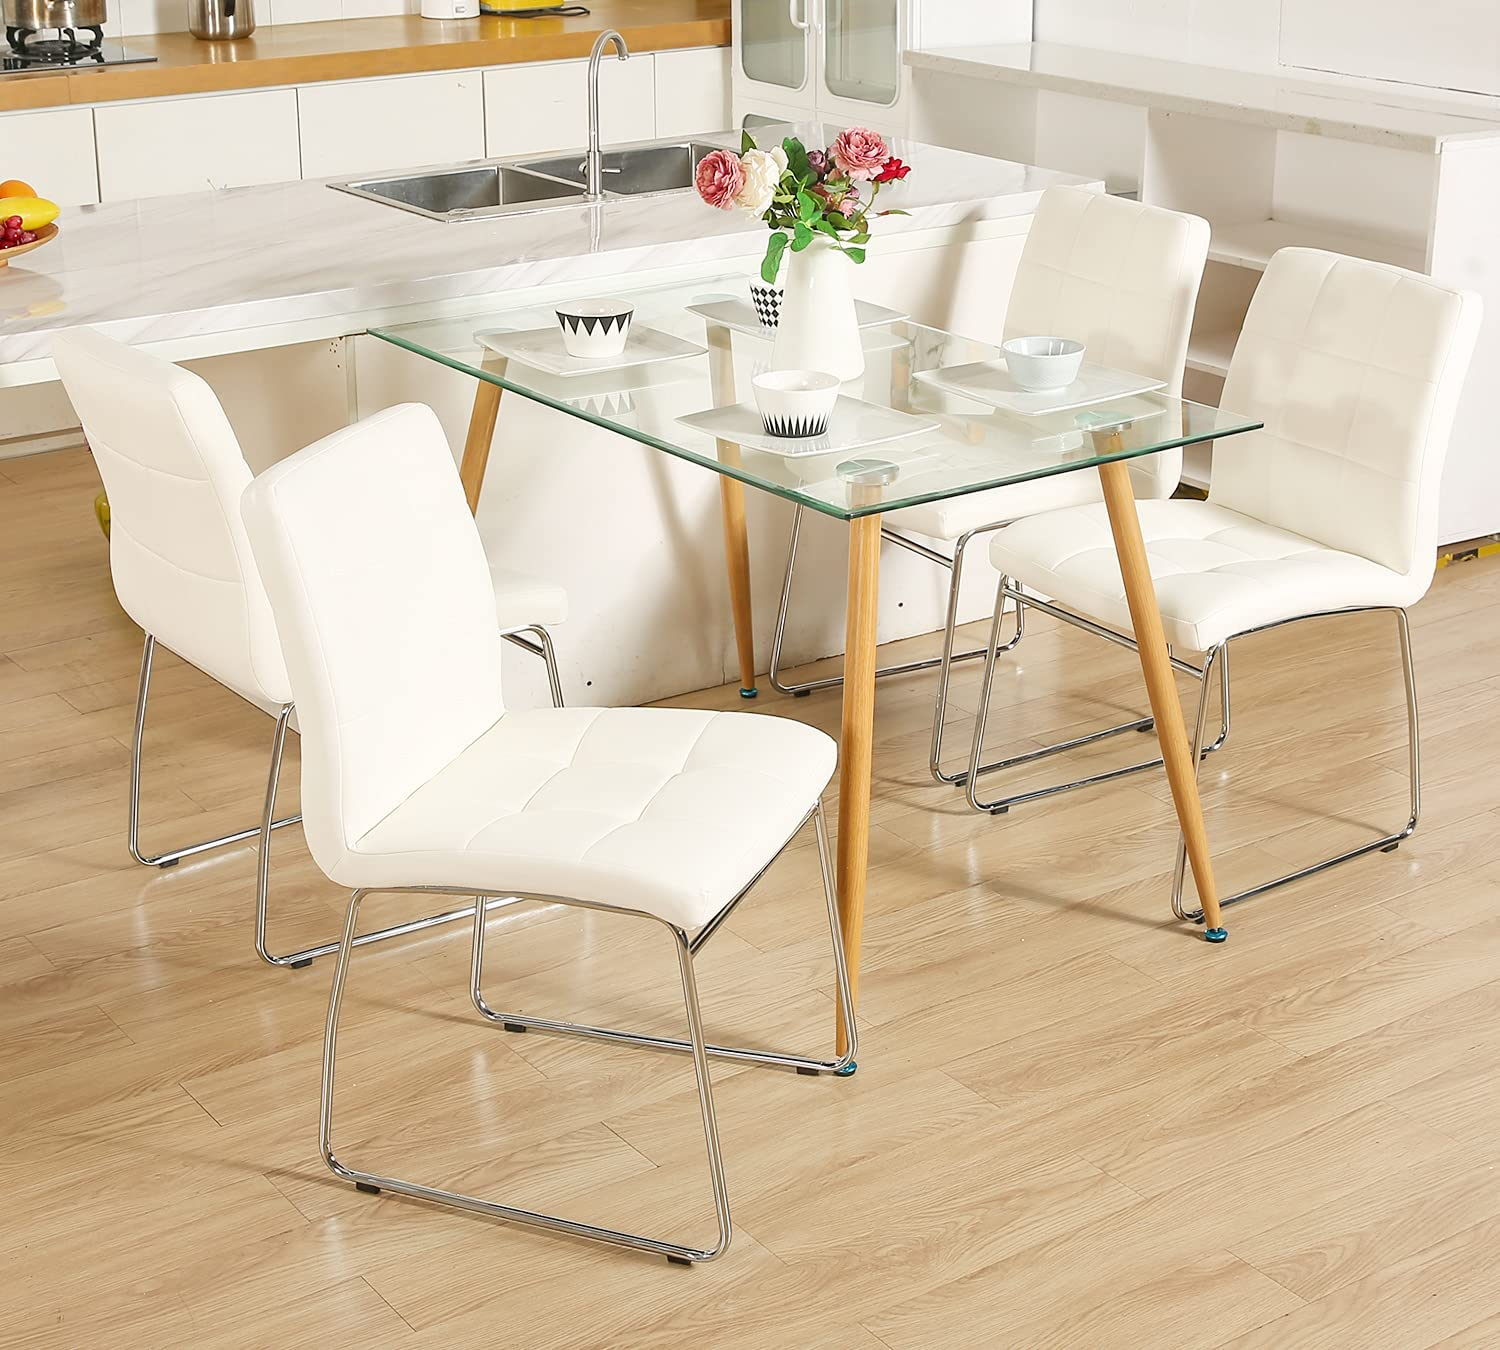 Buy Glass Dining Table Set for 9,WISOICE Modern Rectangle Glass ...